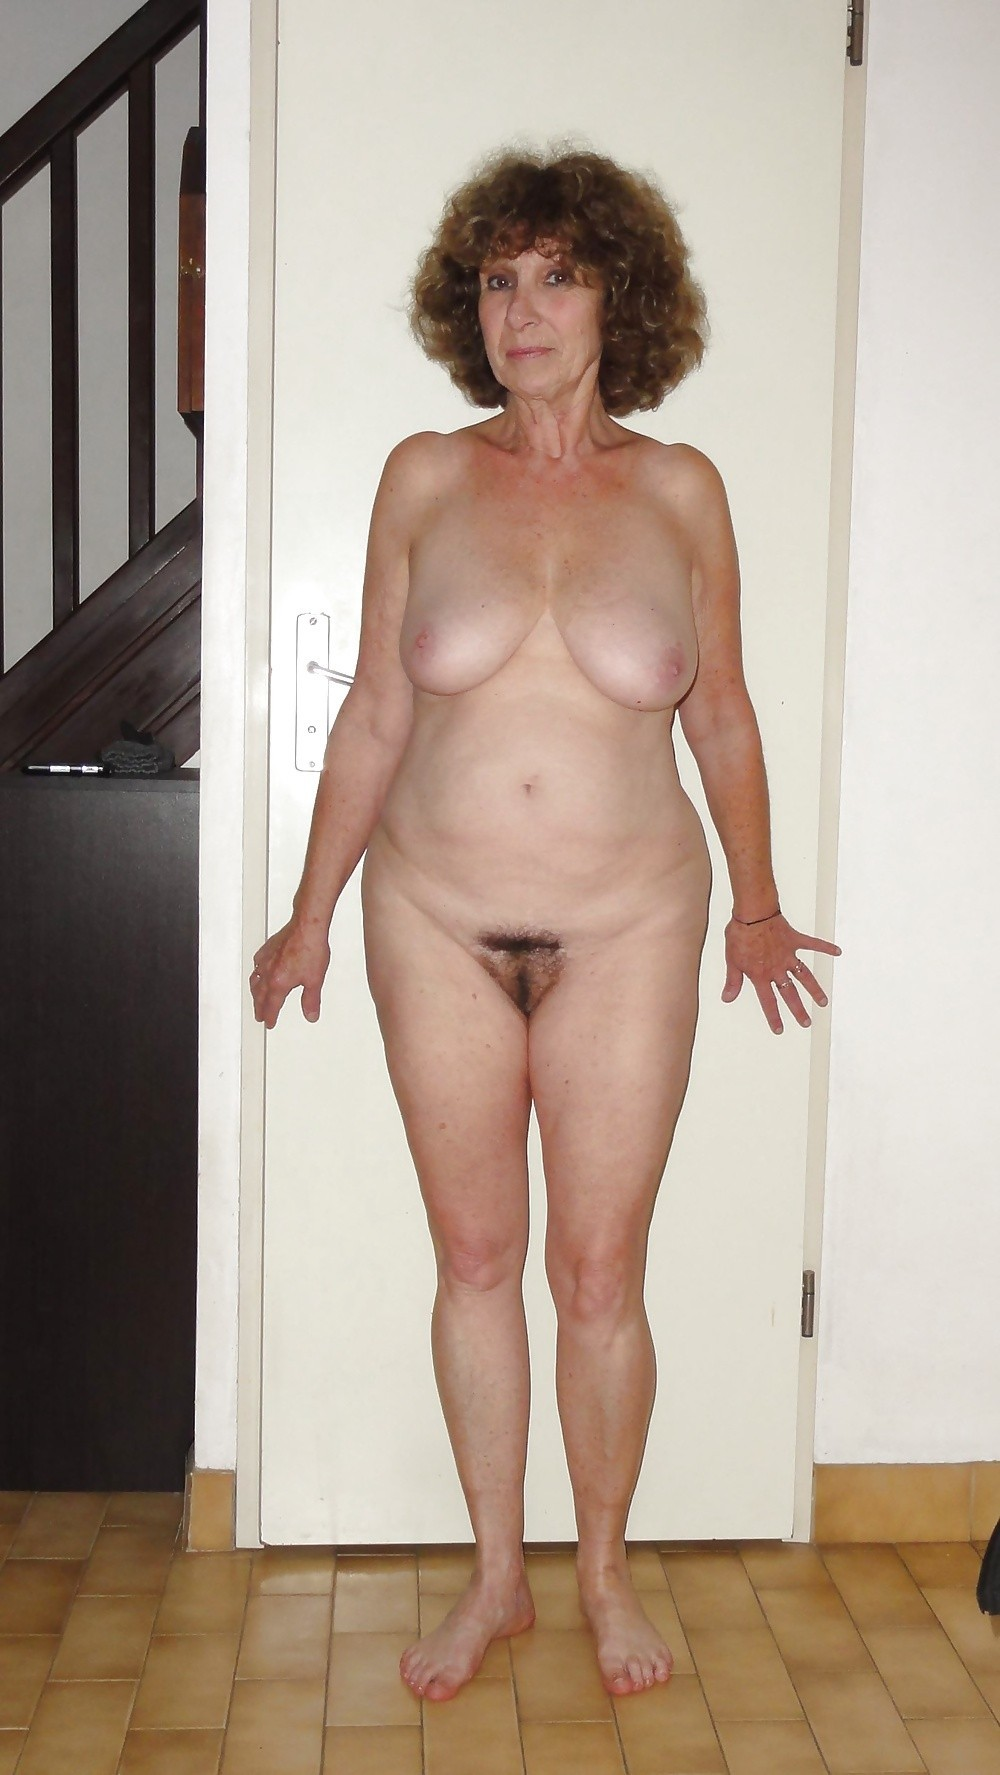 standing-mature-nude-women-meaning-of-the-word-bisexual